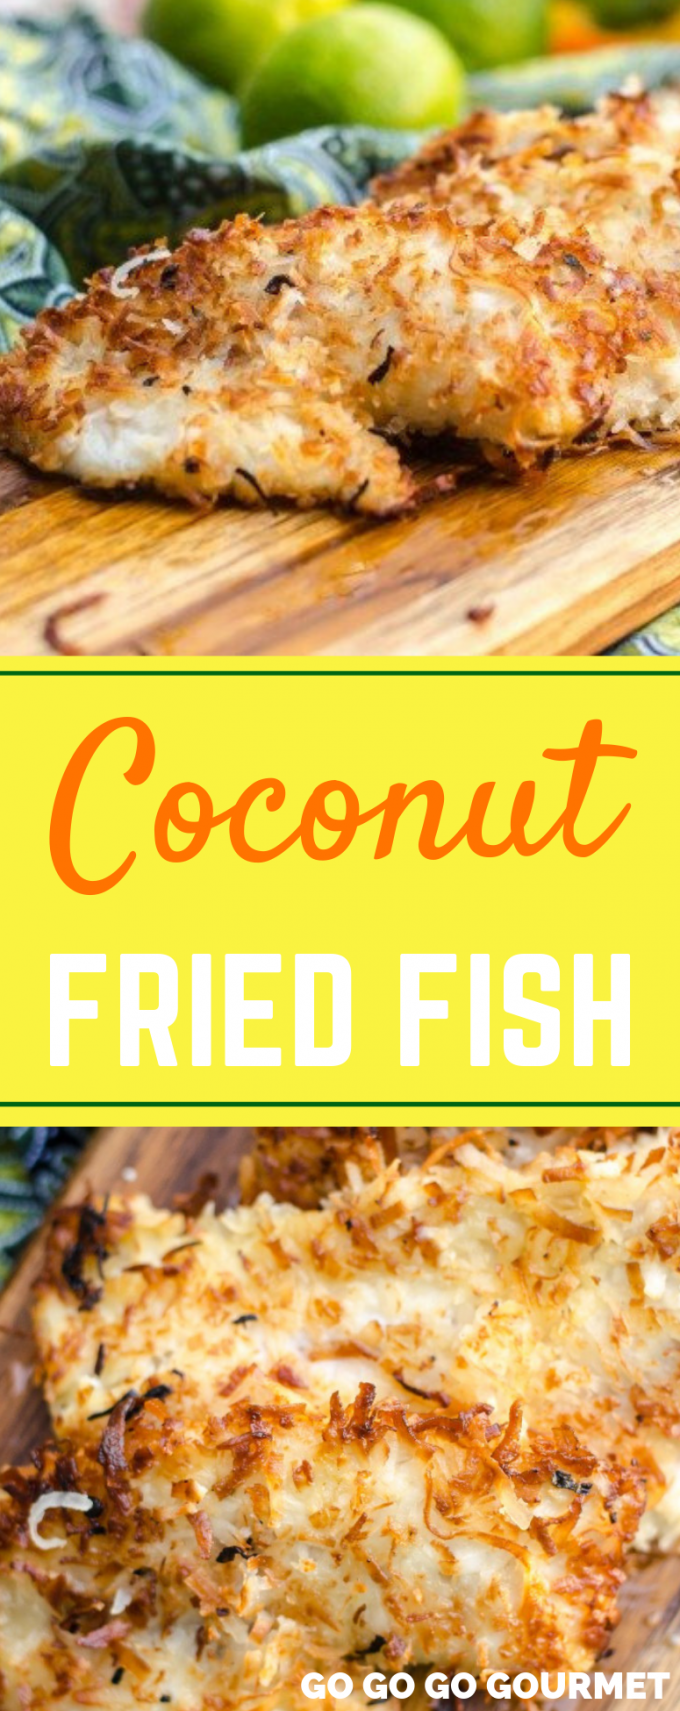 This Coconut Crusted Fried Fish recipe is a surefire way to add a little island flair to your day! Only a handful of pantry-ready ingredients and ready in under 30 minutes. It is one of the best fried fish recipes! #gogogogourmet #coconutfriedfish #easyfishrecipes #friedfishrecipes via @gogogogourmet